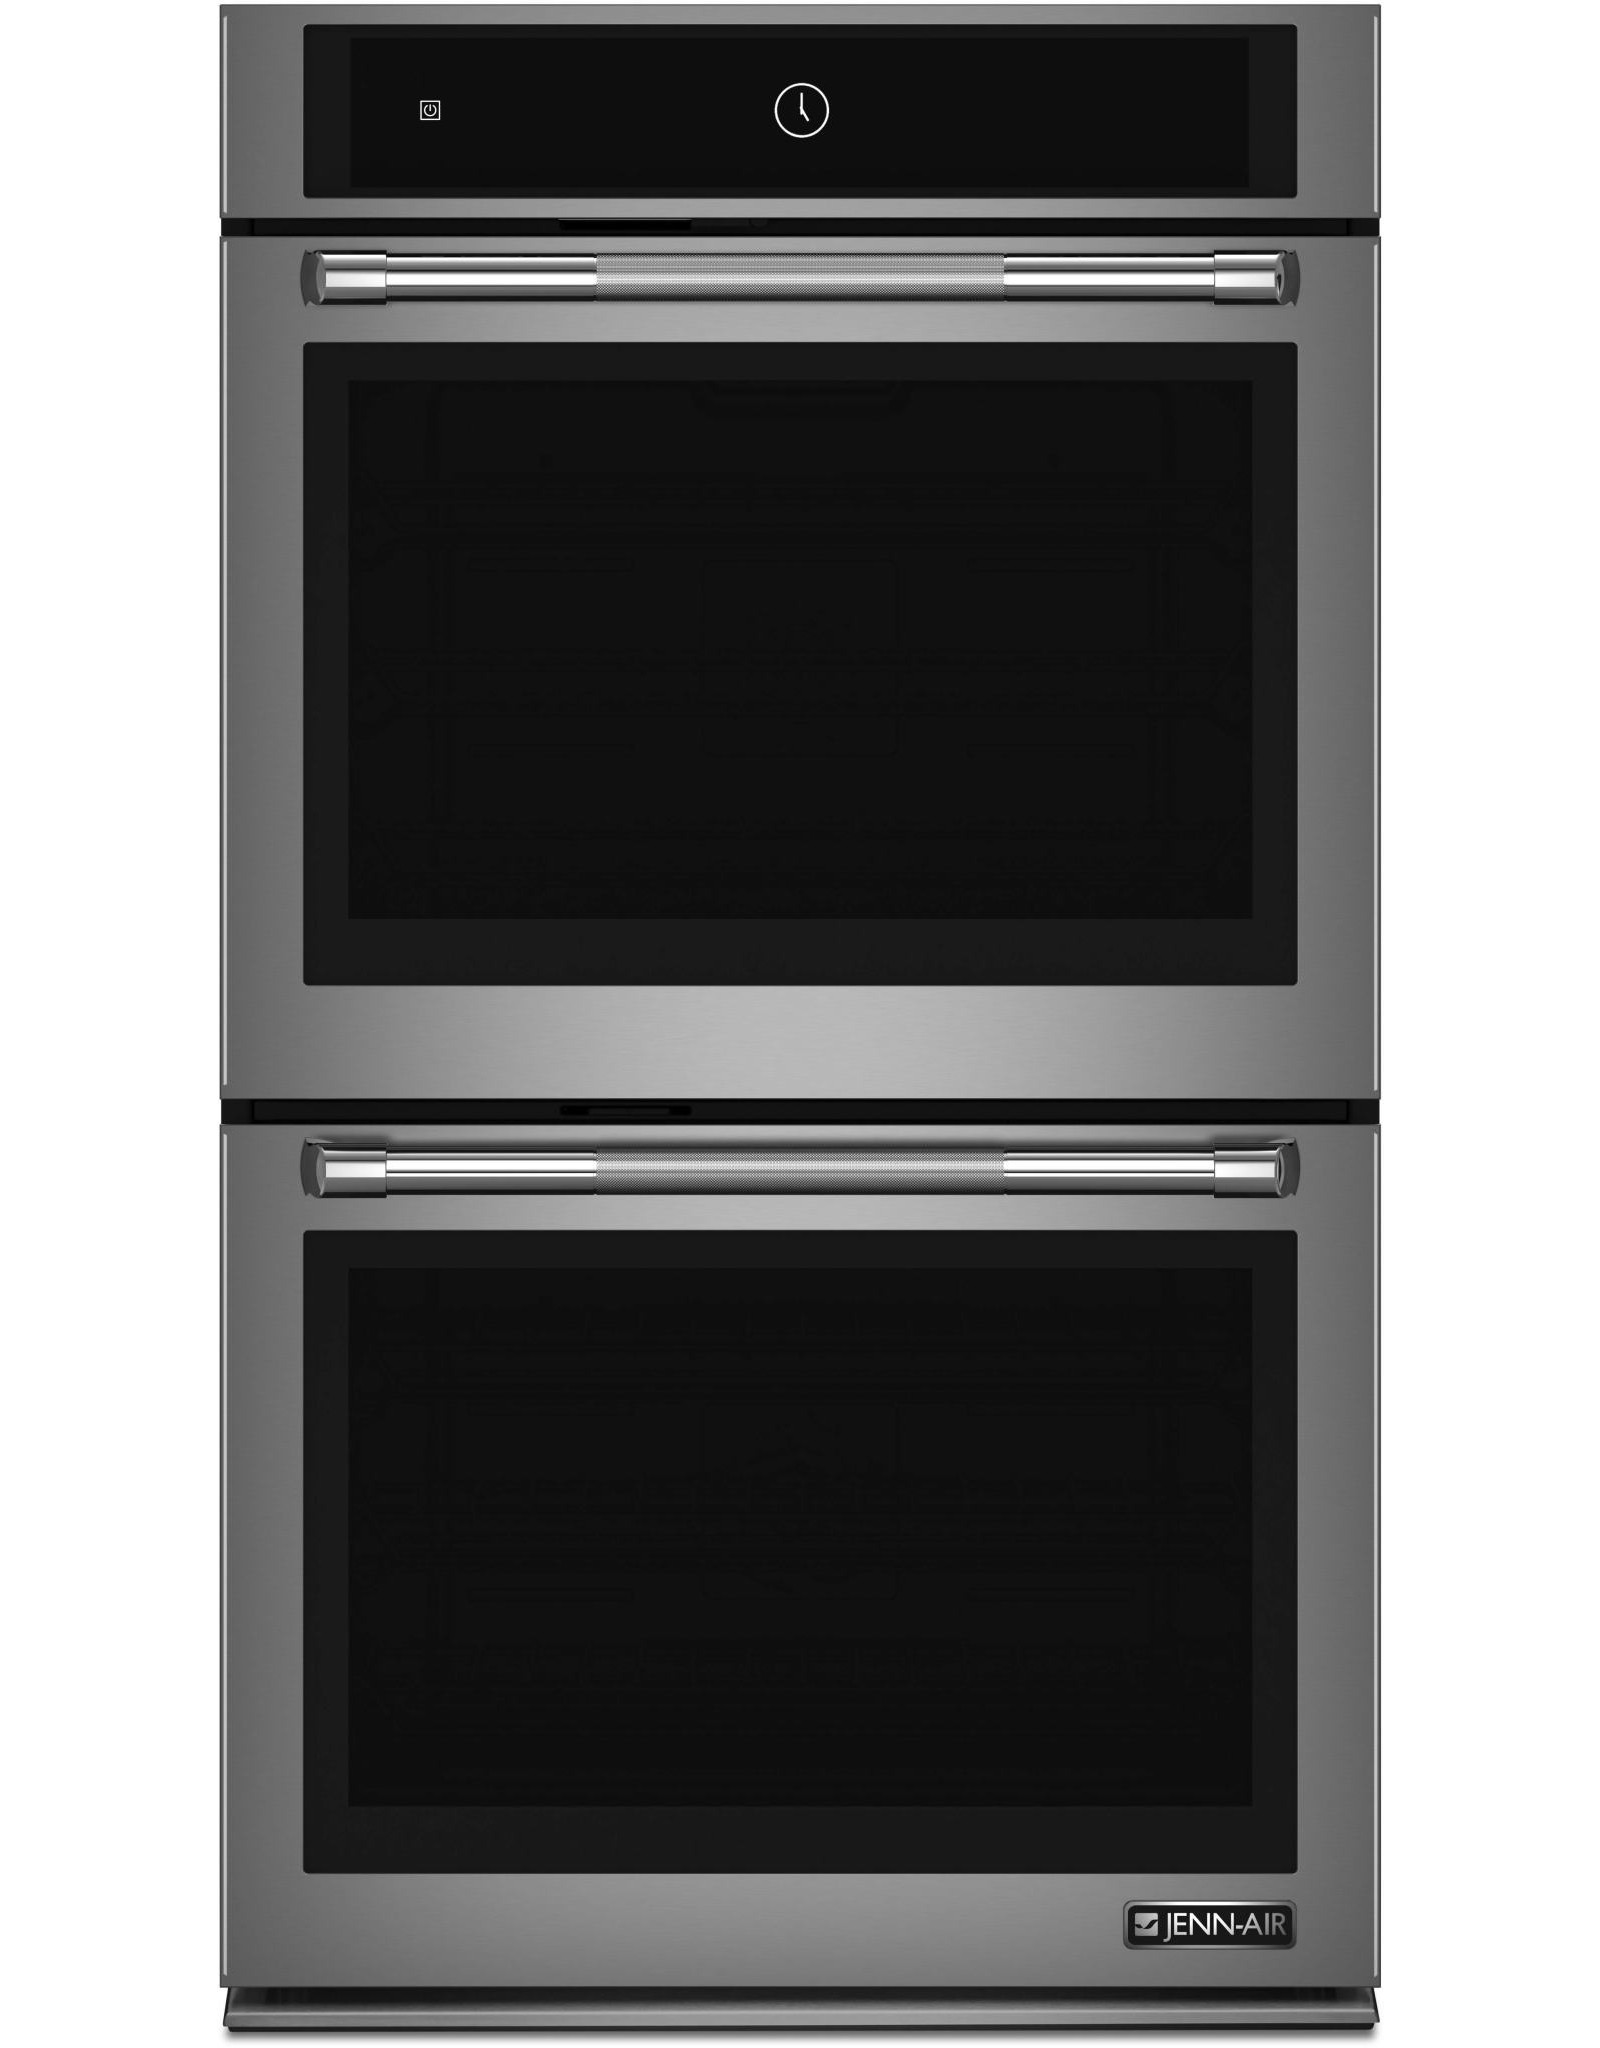 JENN-AIR JJW2830DP 30 Inch Electric Double Wall Oven with  ® n System, 4.3 Inch Full-Color LCD Display, Telescoping Glide Rack, Rapid Preheat, Common Cutout, My Creations, 10 Cubic Foot Total Capacity, Halogen Lighting, Extra-Large Oven Window, and Temperat